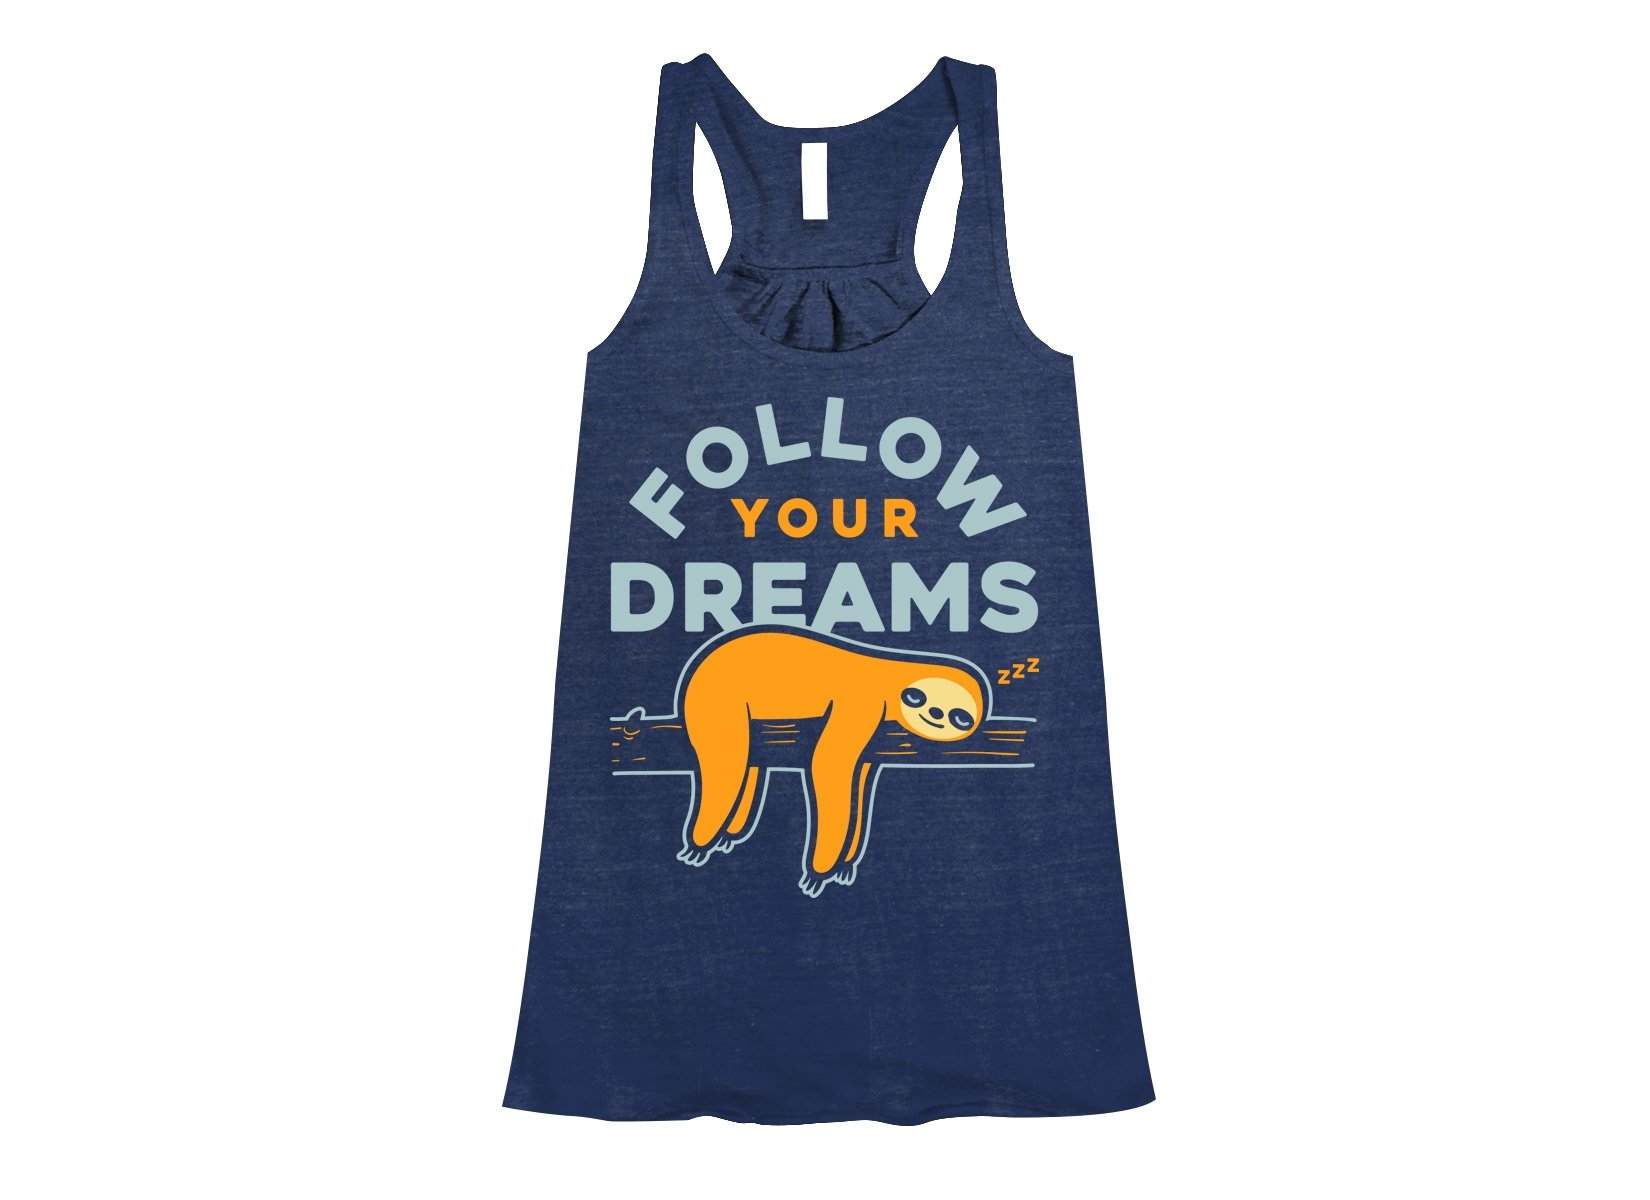 Follow Your Dreams on Womens Tanks T-Shirt